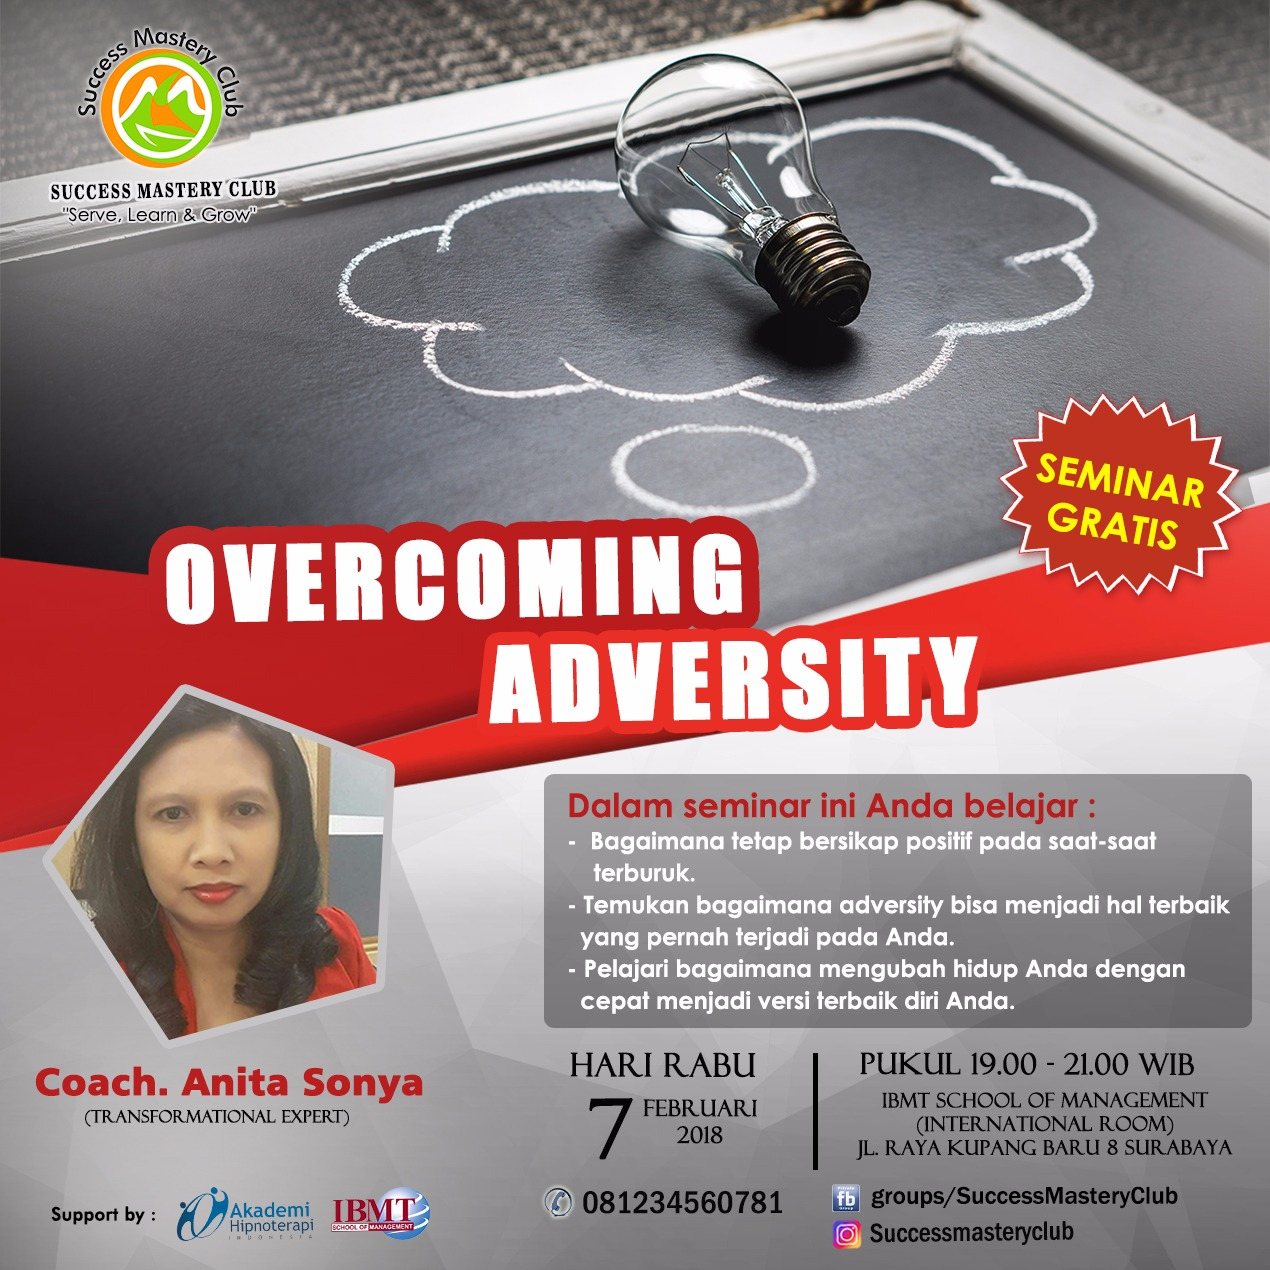 overcoming adversity Social enterprise company to transform the nation through leadership development contents and programs.